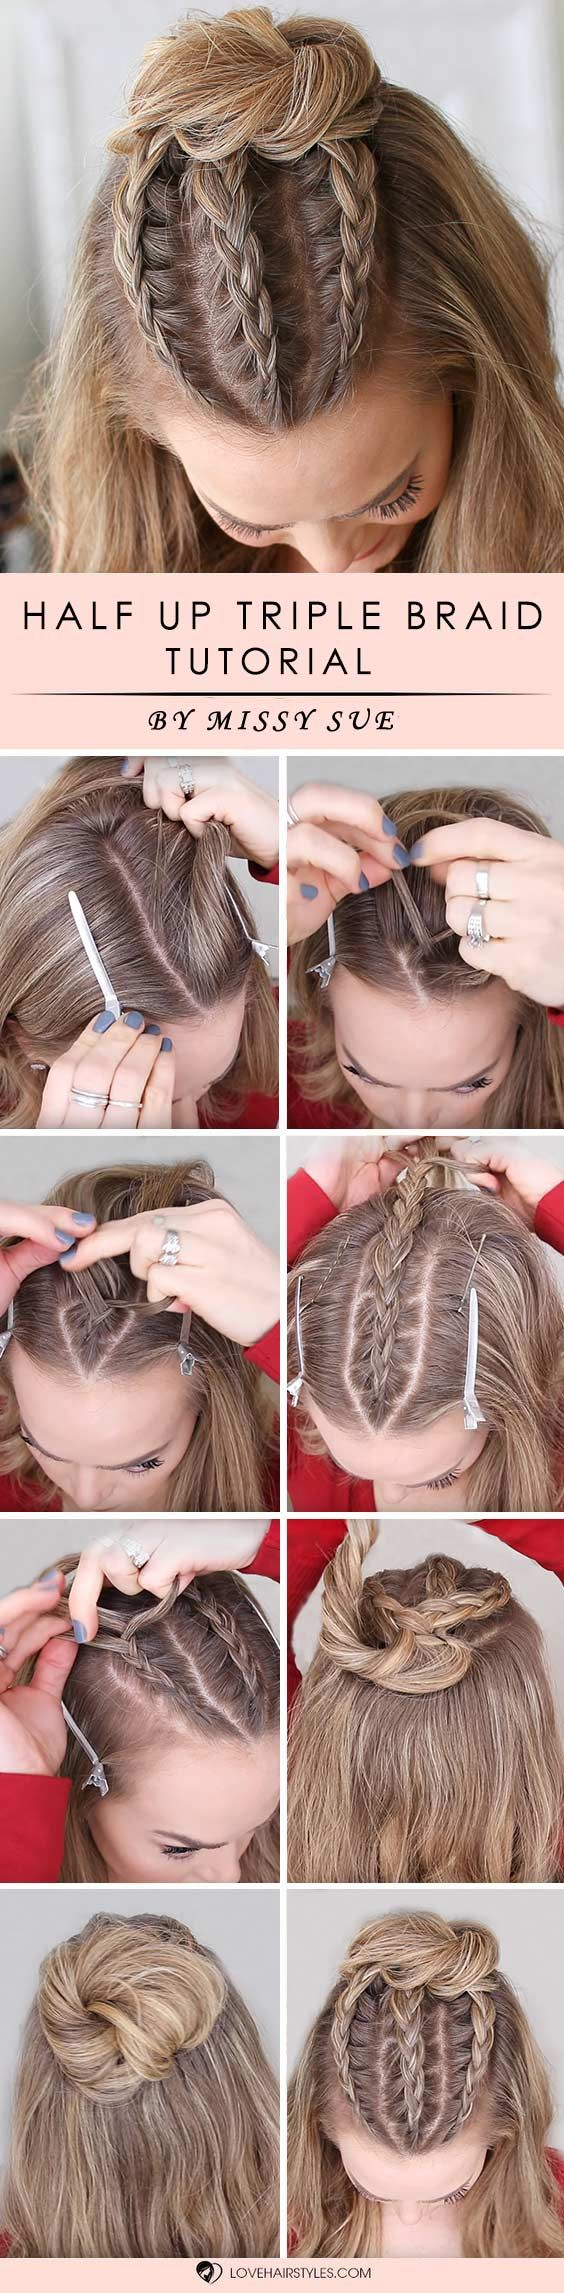 Half Up Triple Braid Mini Bun #braids #hairtutorials